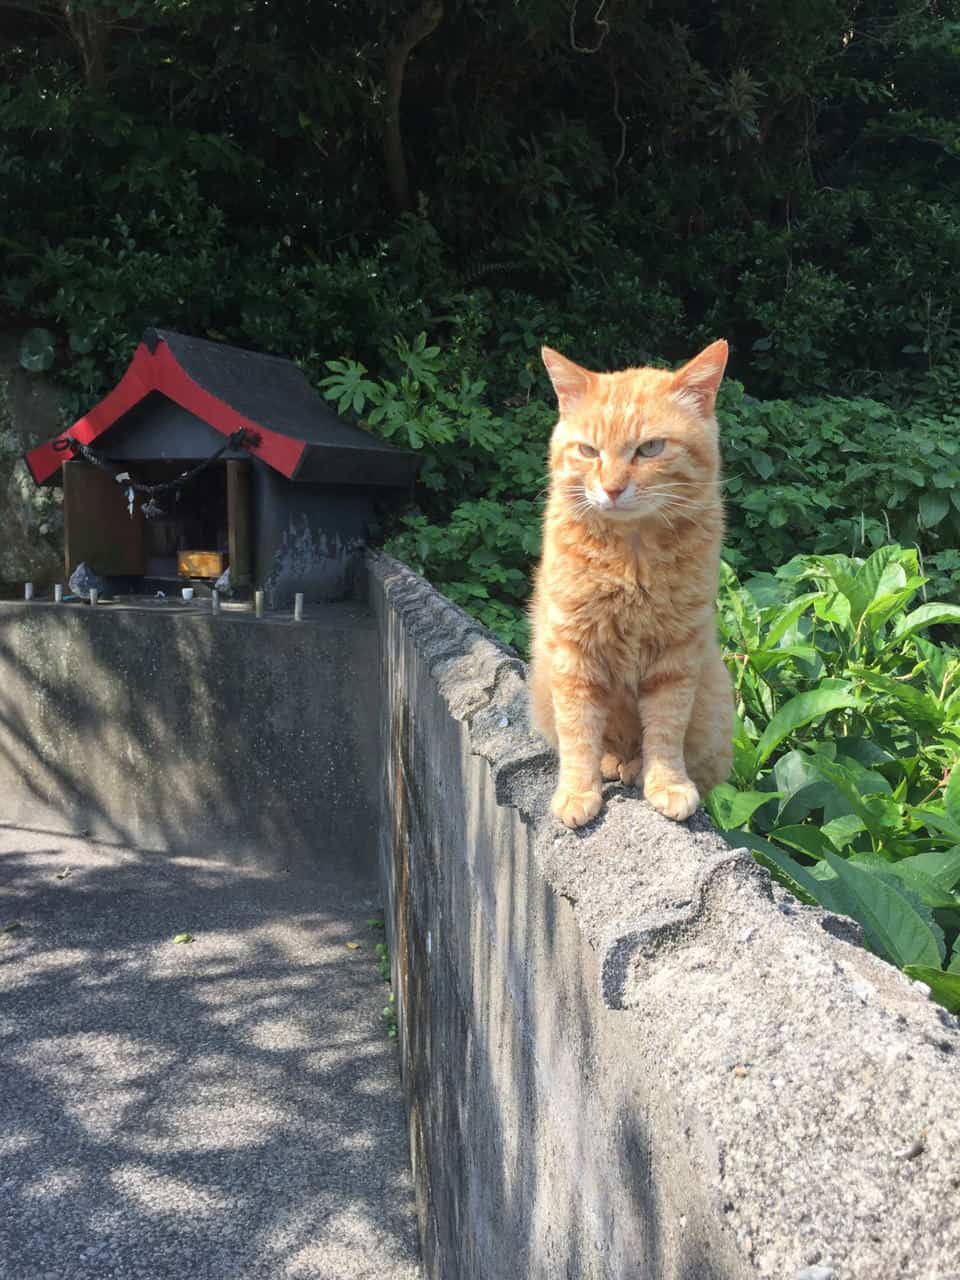 Oita's Magical Islands of Cats and Seashells